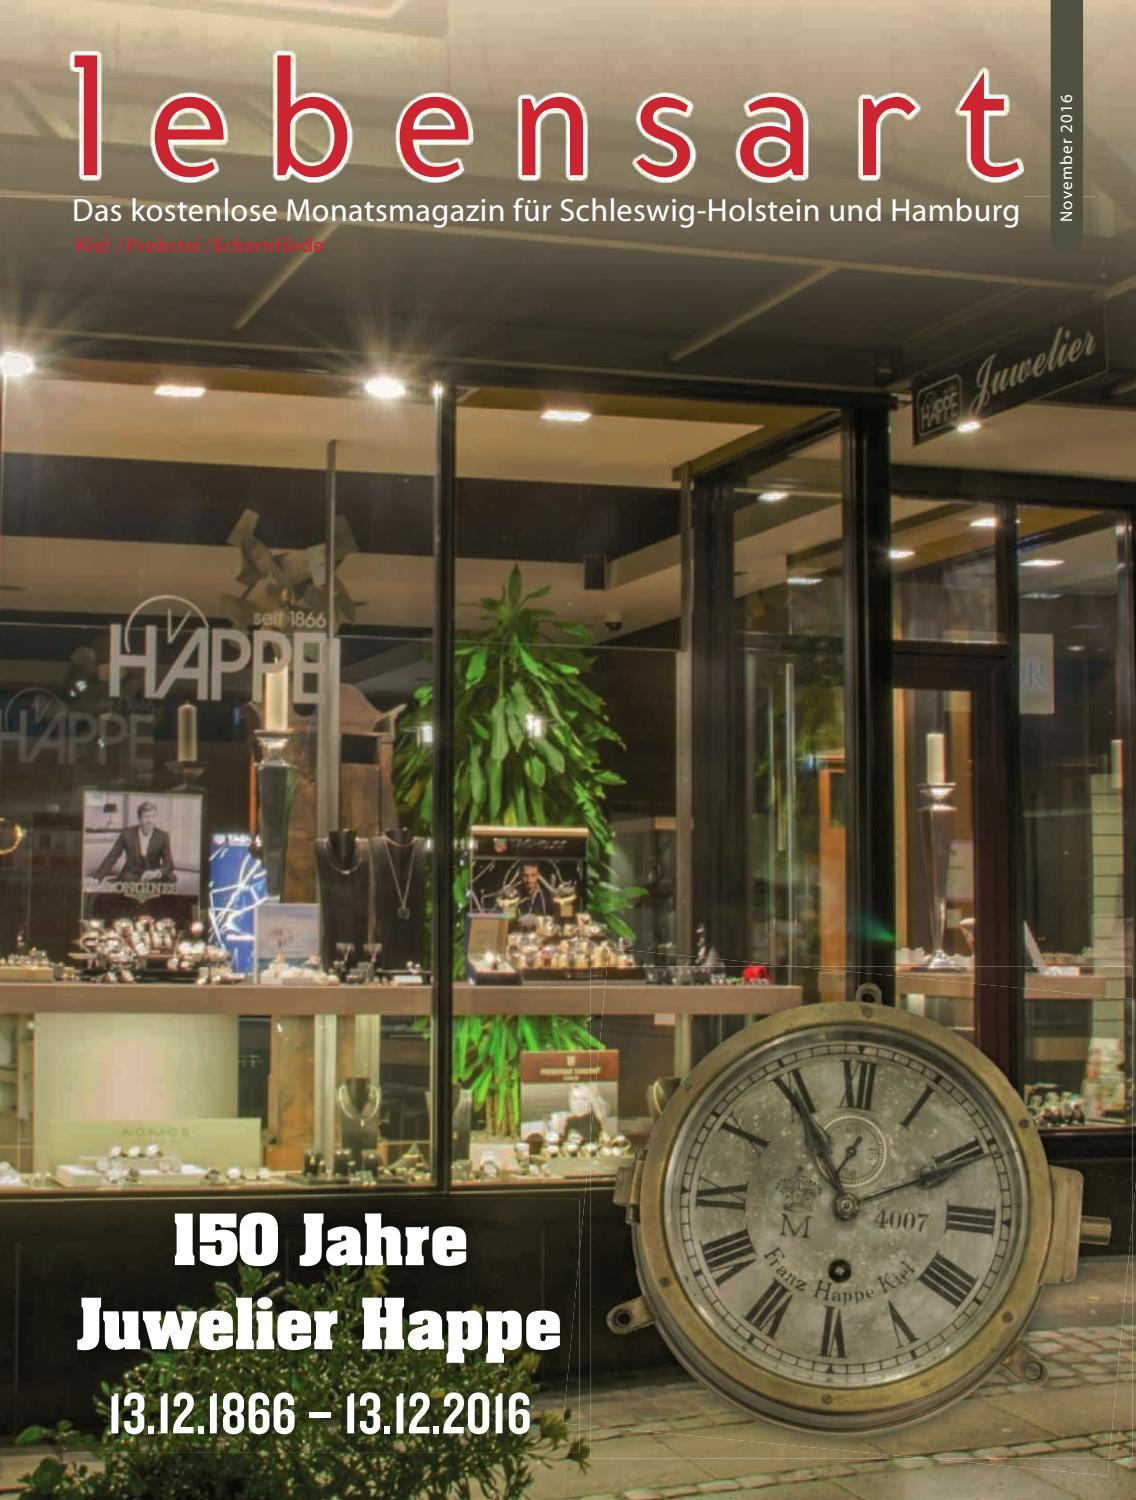 Fliesen Holzoptik Harrys Fliesenmarkt Fliesen Harry Hamburg Fliesen Harry Best 28 Images